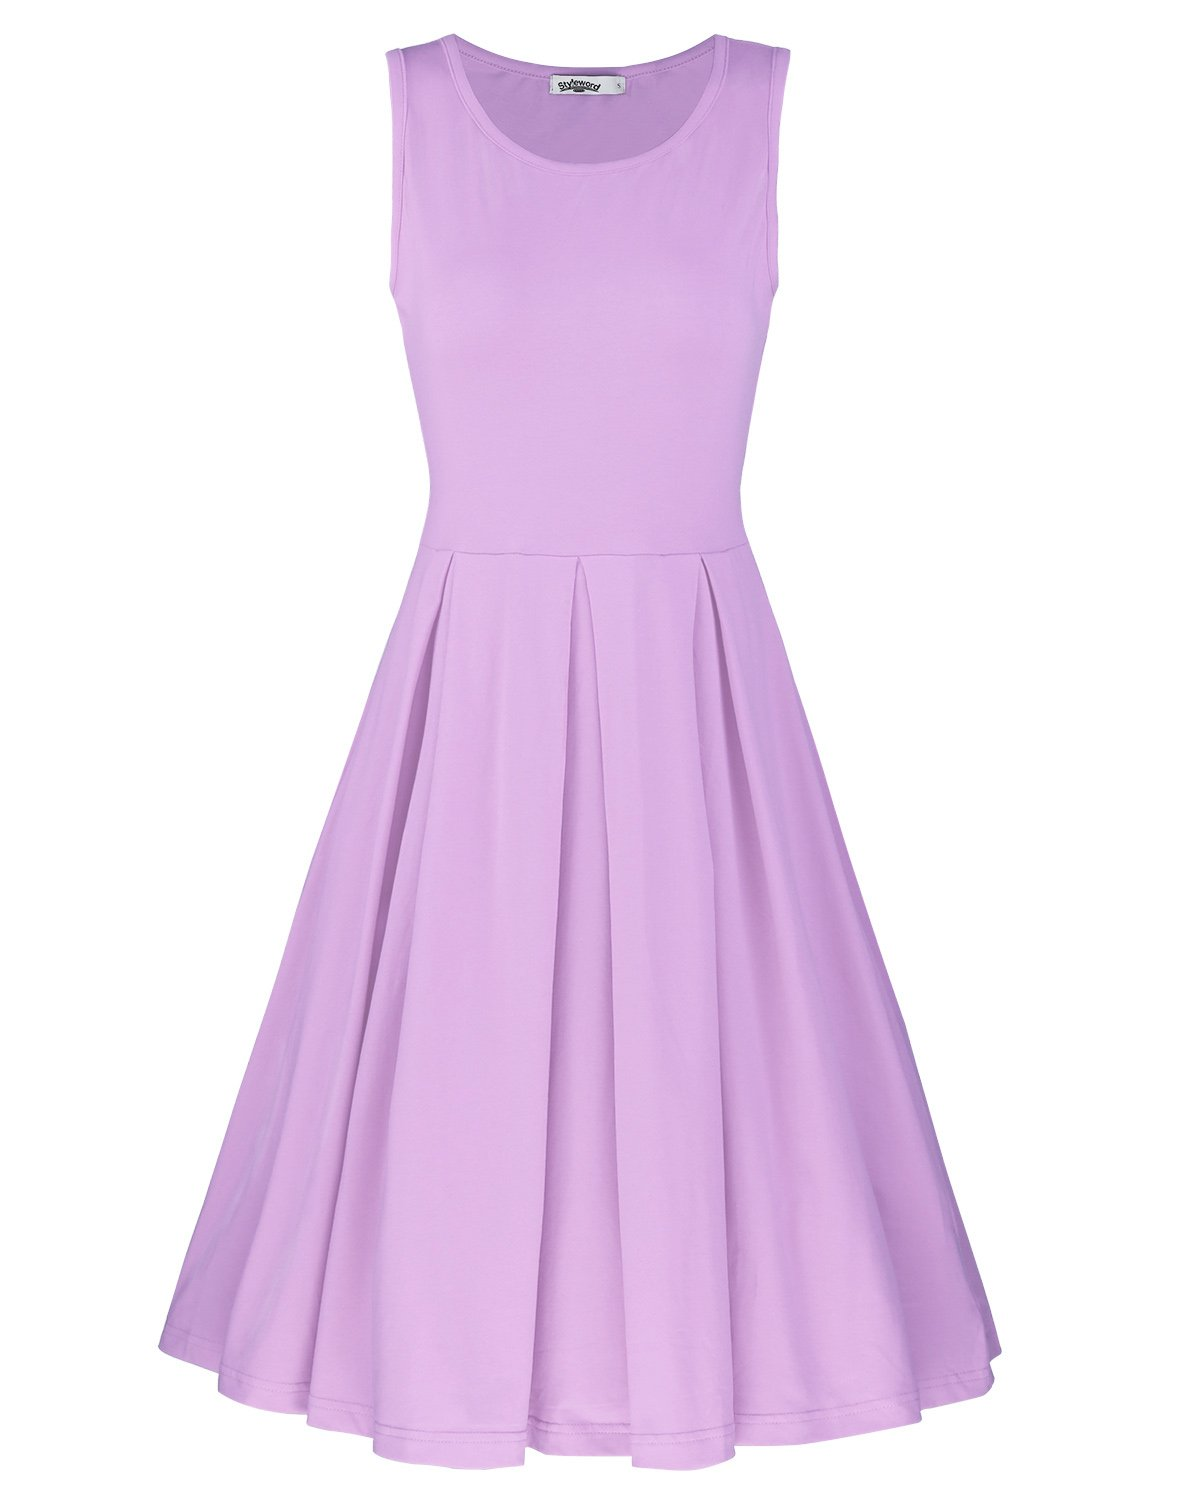 STYLEWORD Women's Sleeveless Casual Cotton Flare Dress(Lavender,L)